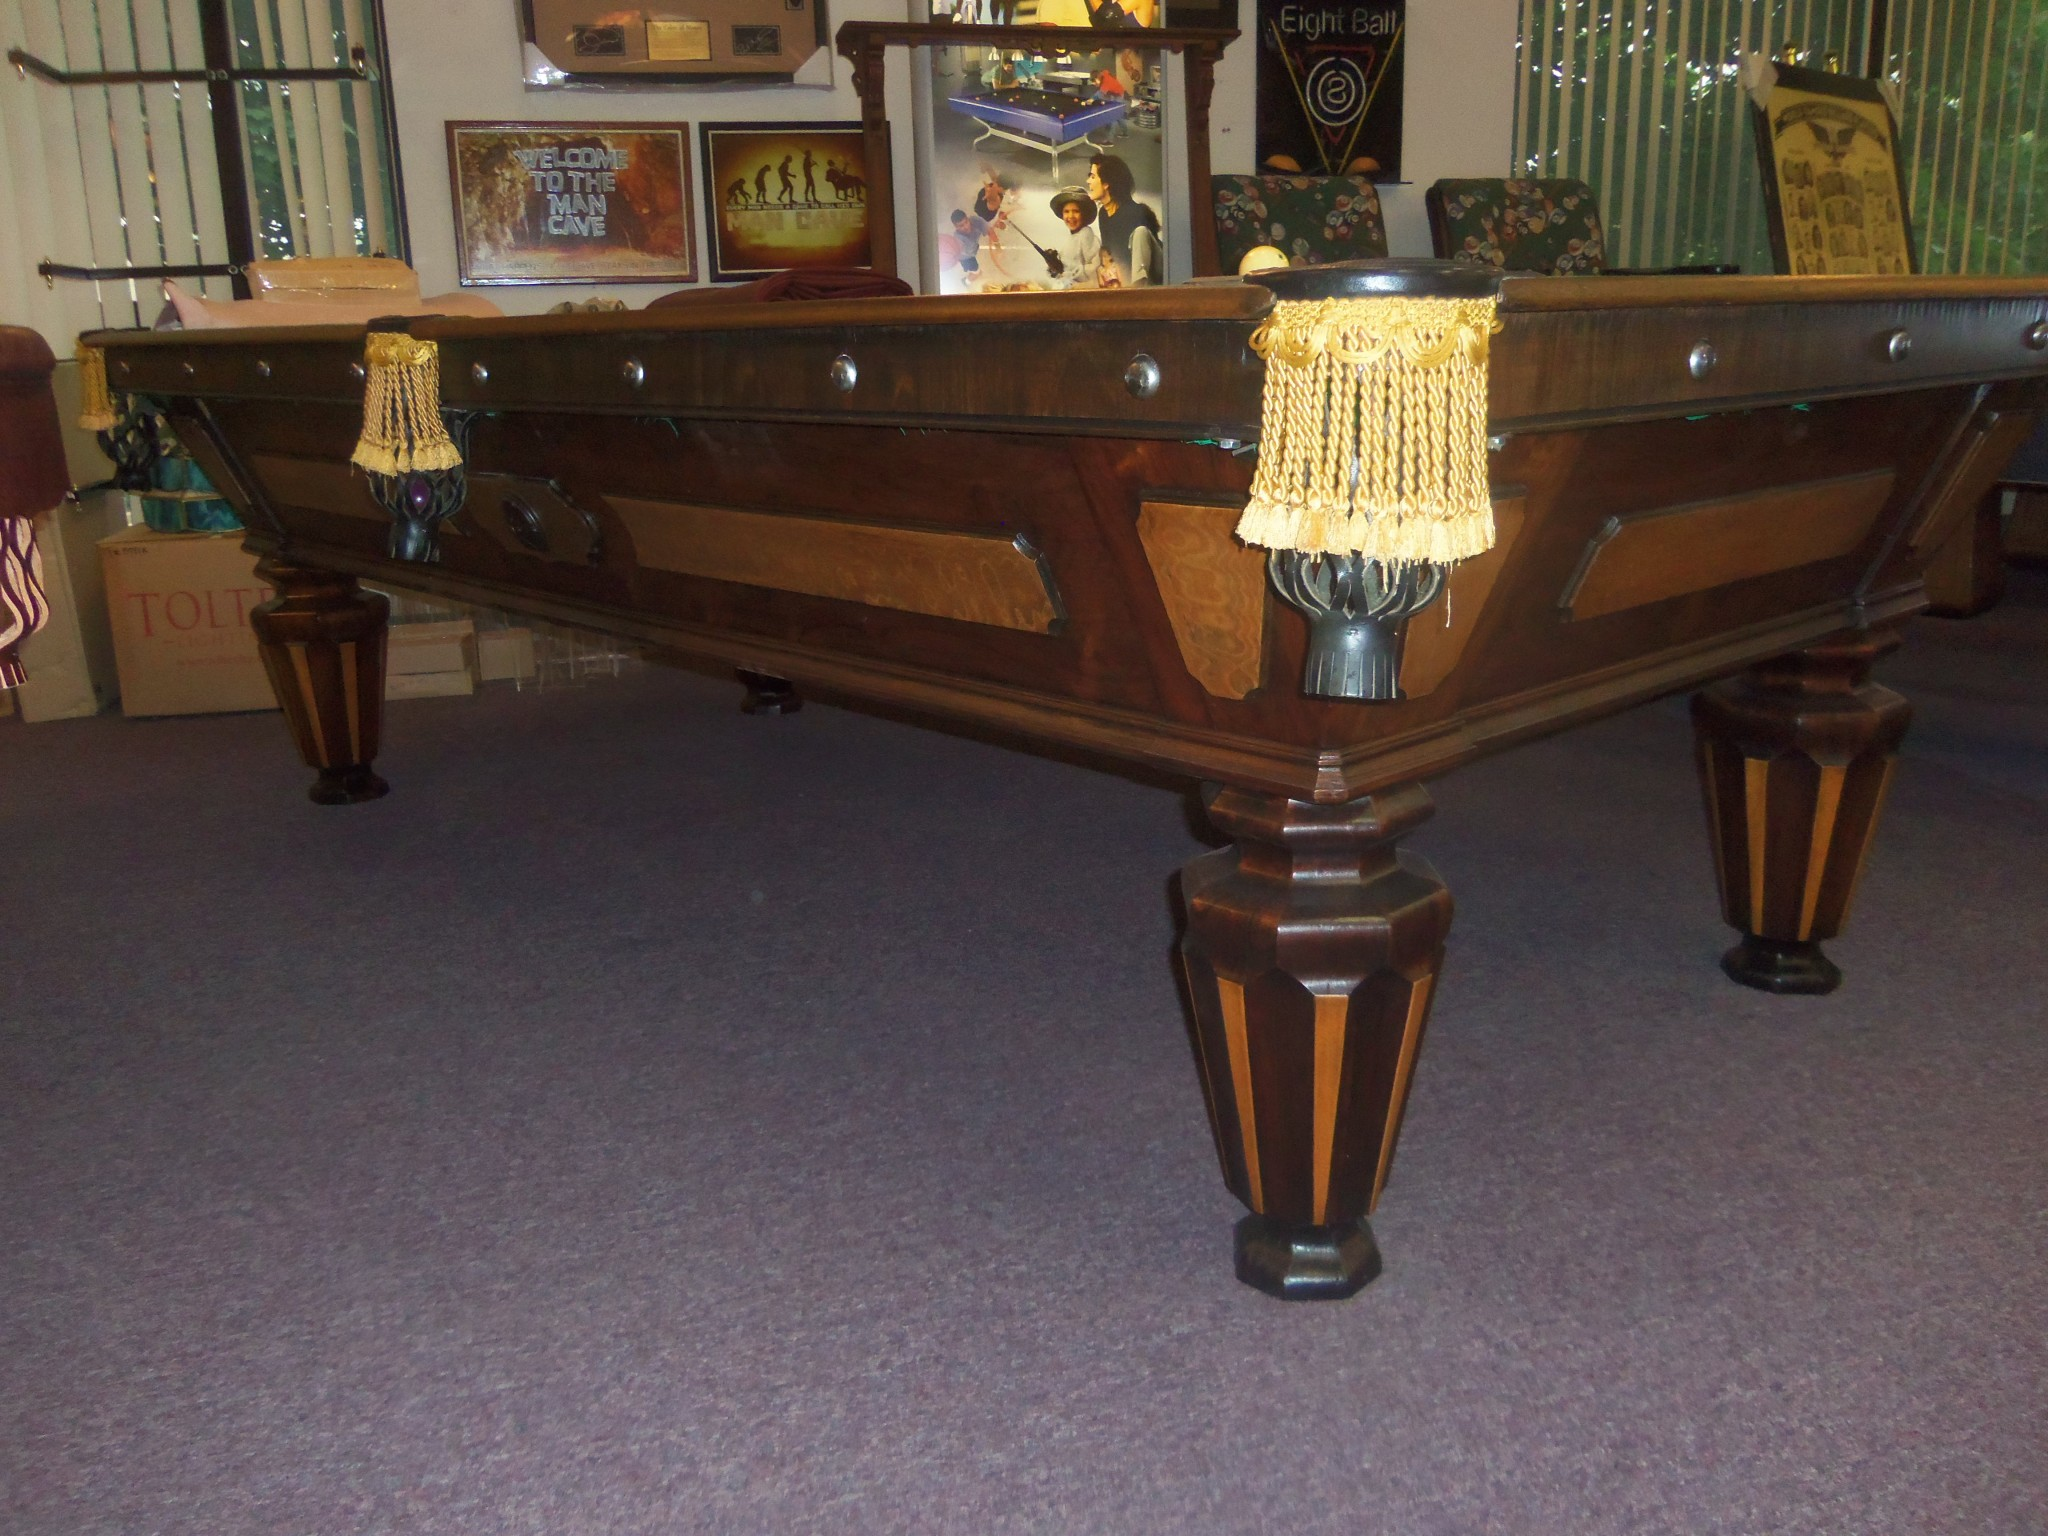 Vintage Pool Table ...